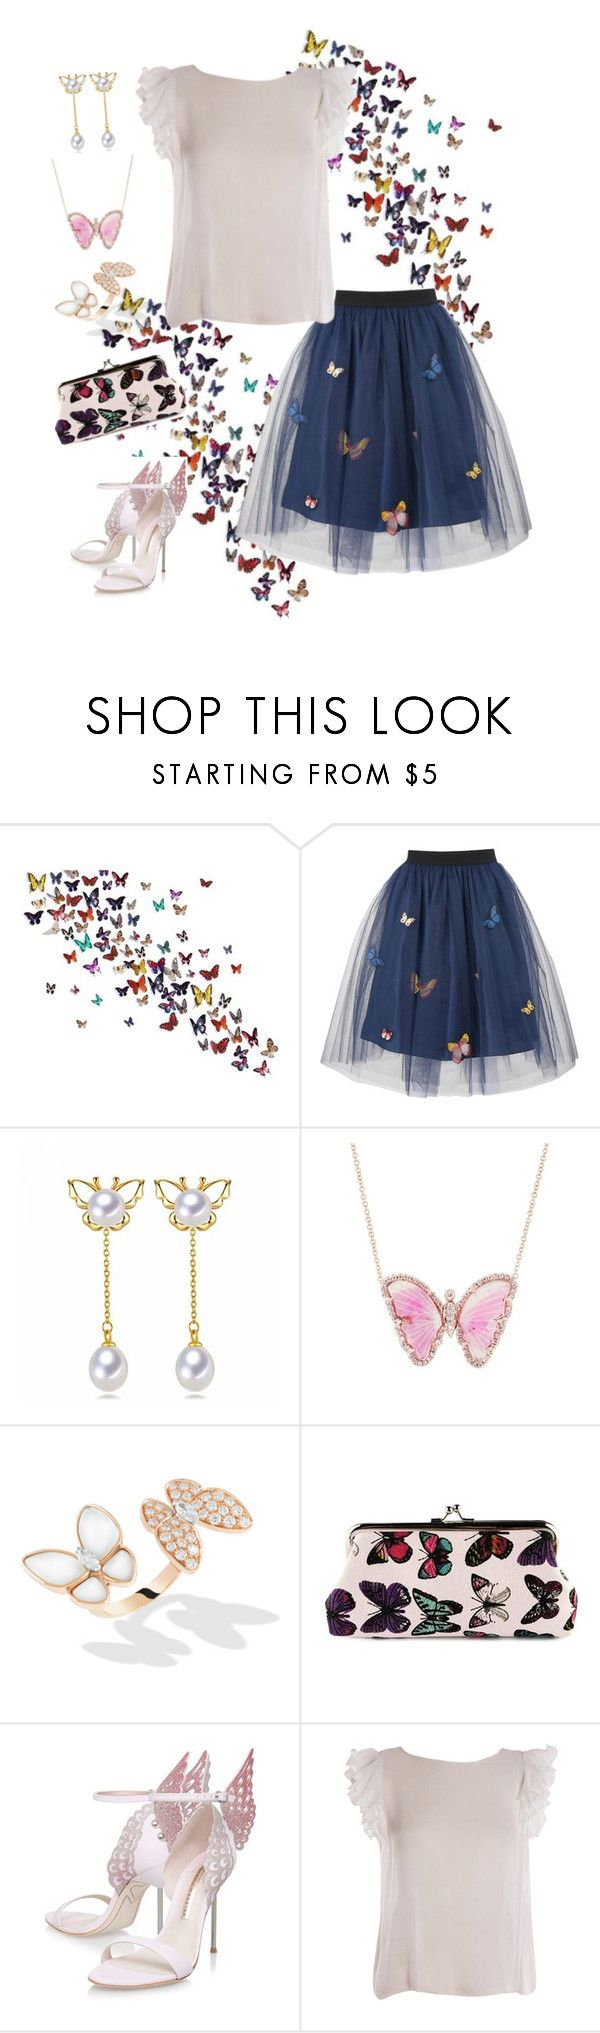 """""""Butterfly Dreams"""" by parnett ❤ liked on Polyvore featuring George J. Love, Luna Skye, Sophia Webster and Parlor"""